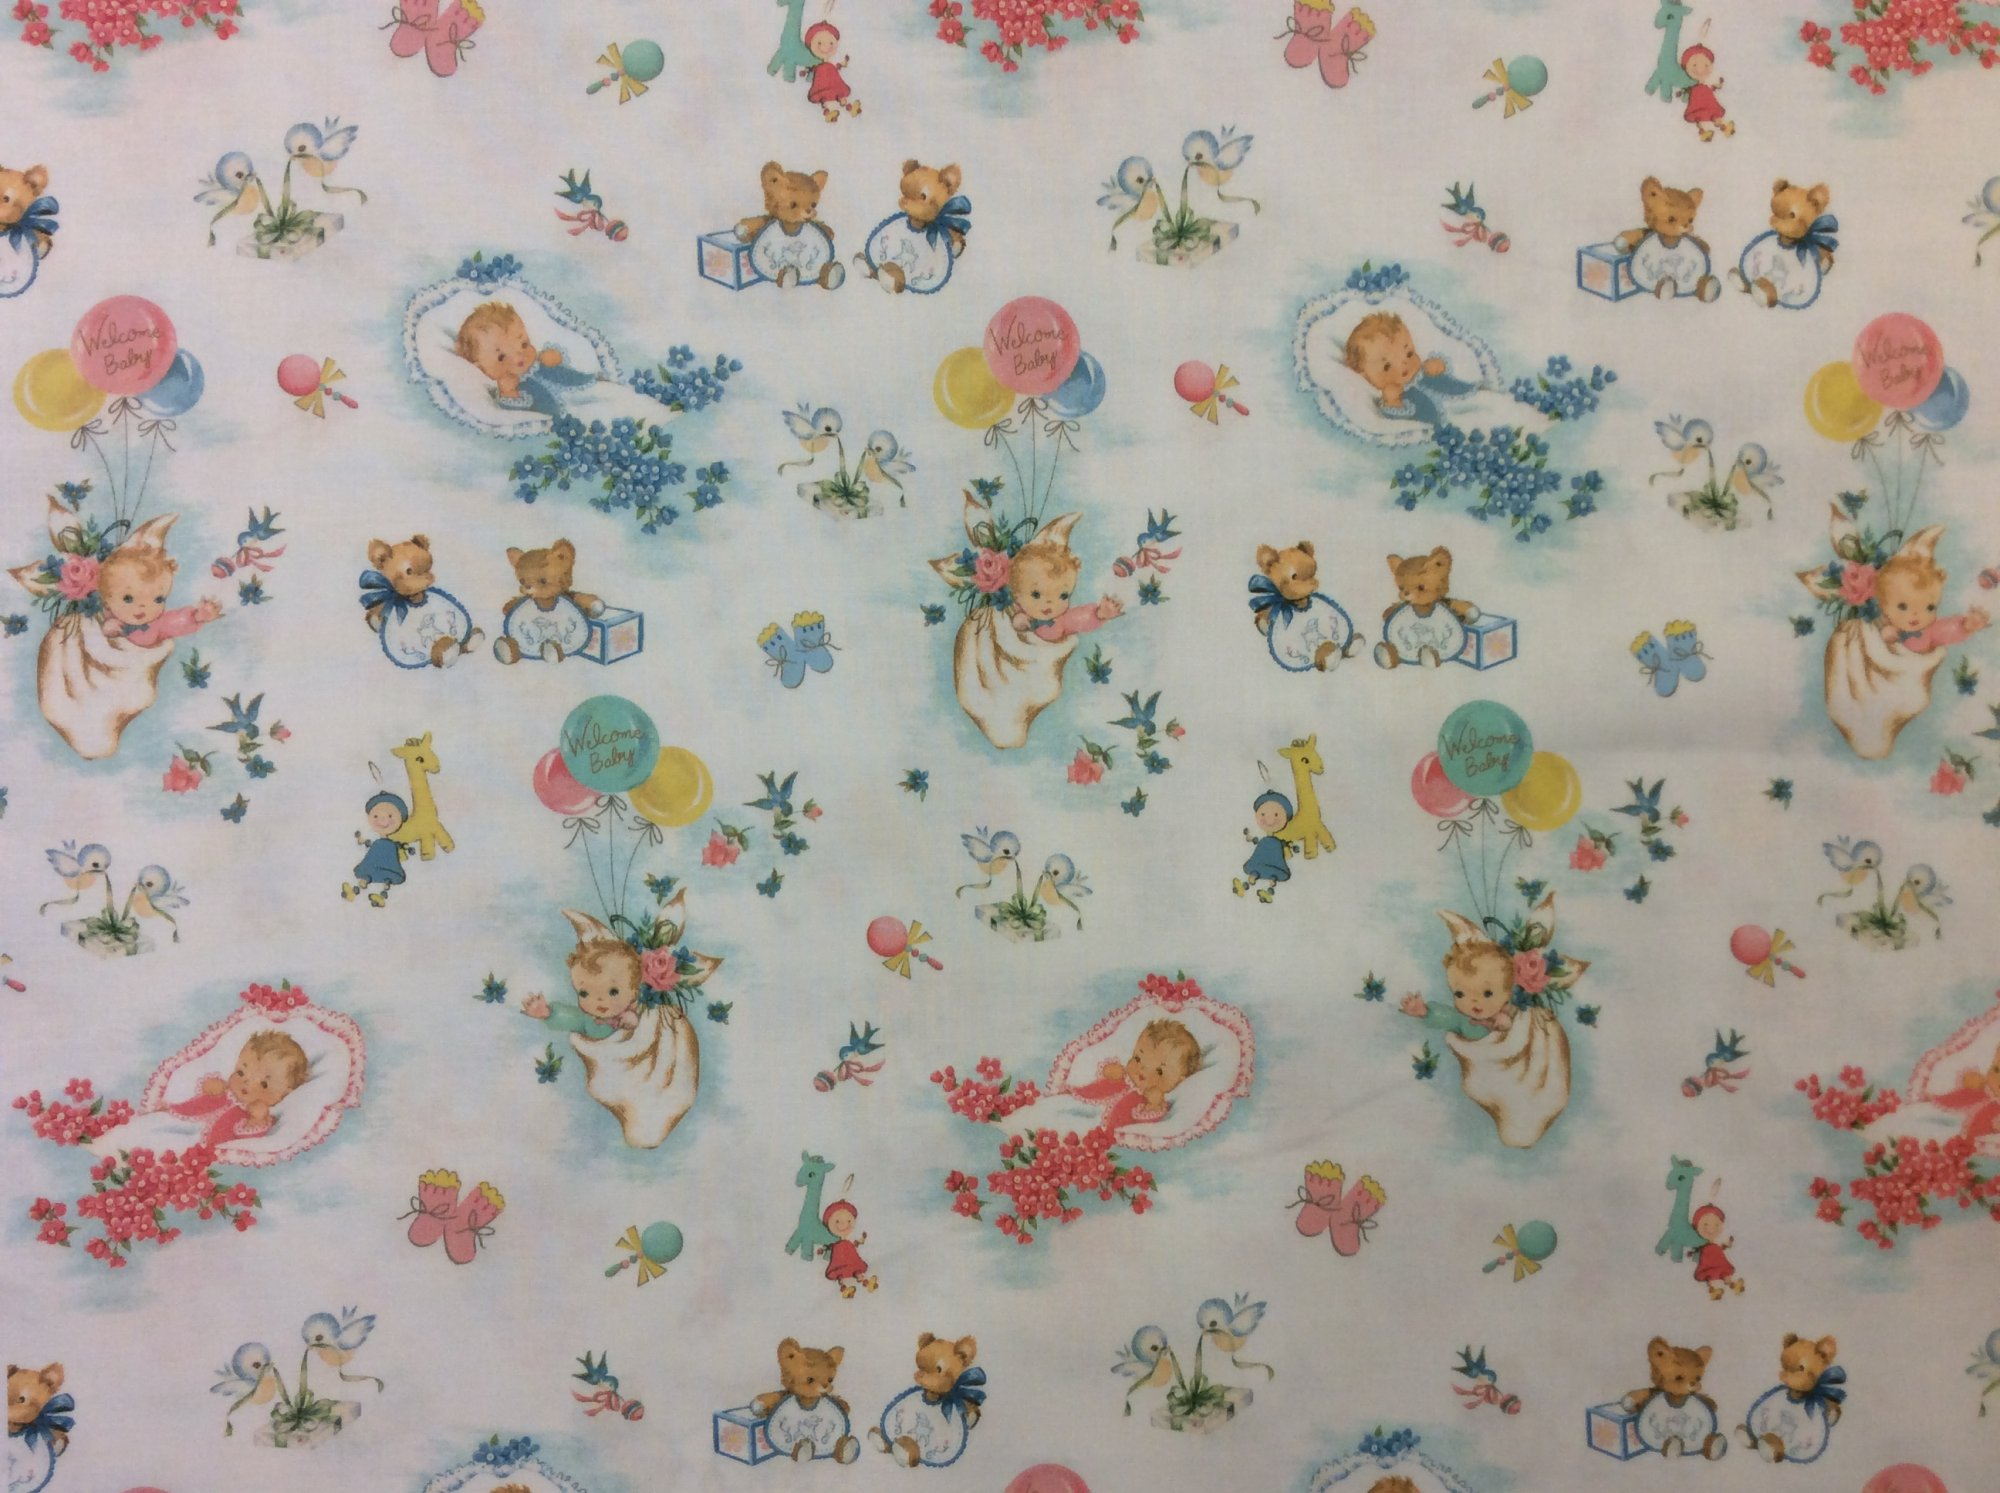 Newborn Baby Retro Wrapping Paper Baby Shower Style Cotton Quilt Fabric NT95